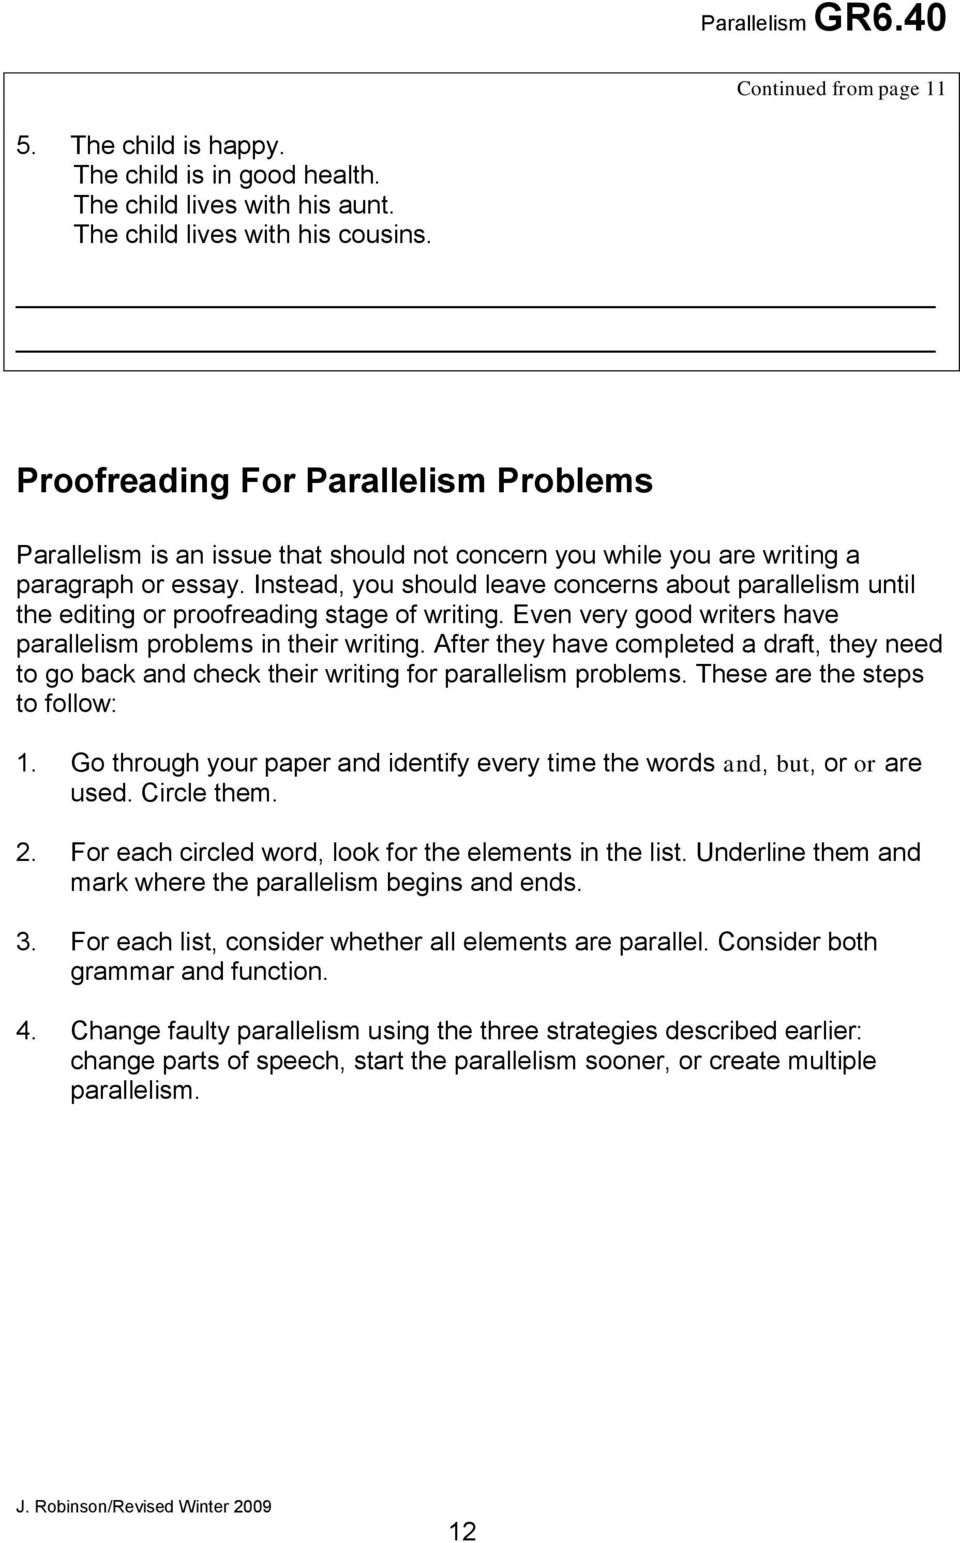 learning centre parallelism pdf instead you should leave concerns about parallelism until the editing or proofreading stage of writing